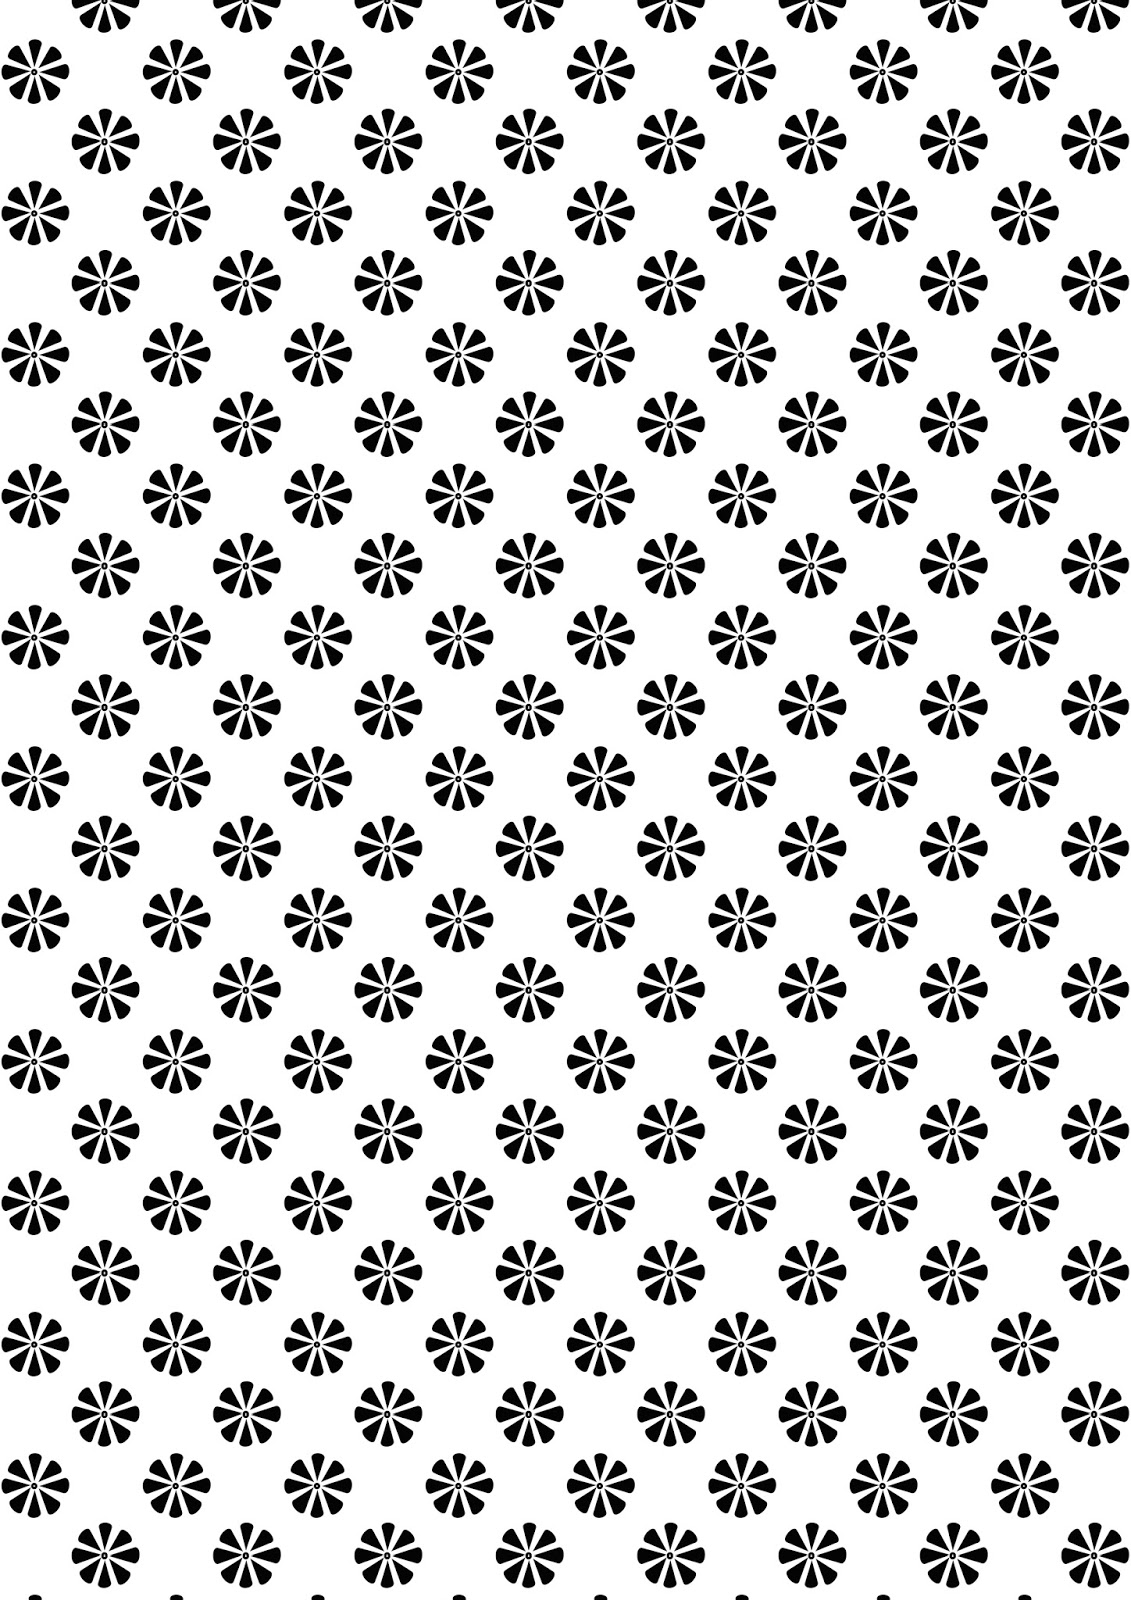 Free Printable Floral Pattern Paper DIN A 4 Black And White Gift Wrapping